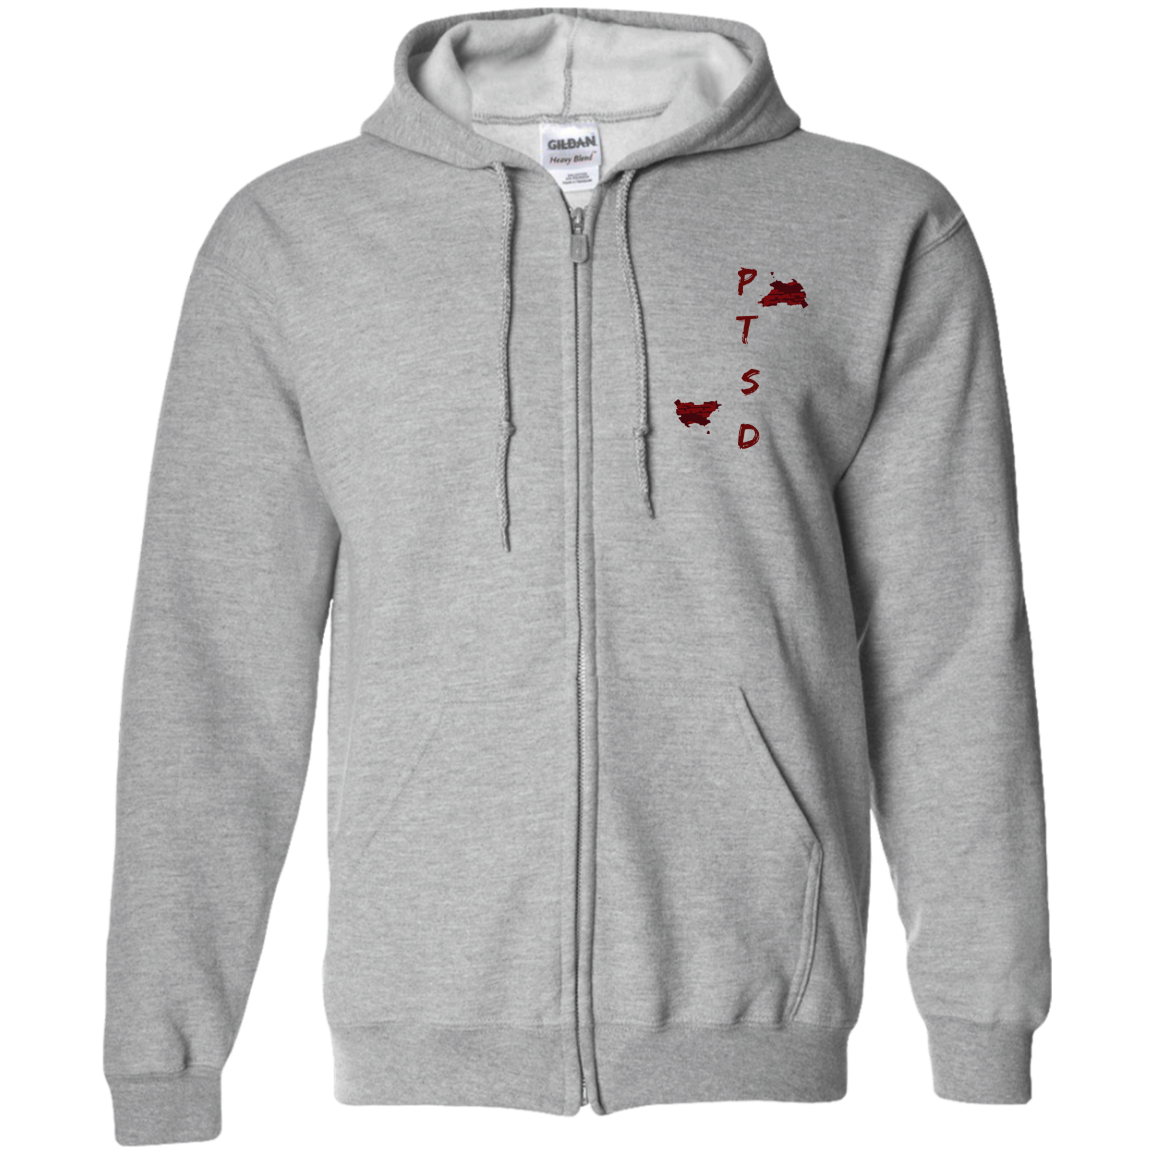 PTSD by Wisam UNISEX EMBROIDERED Zip Up Hoodie